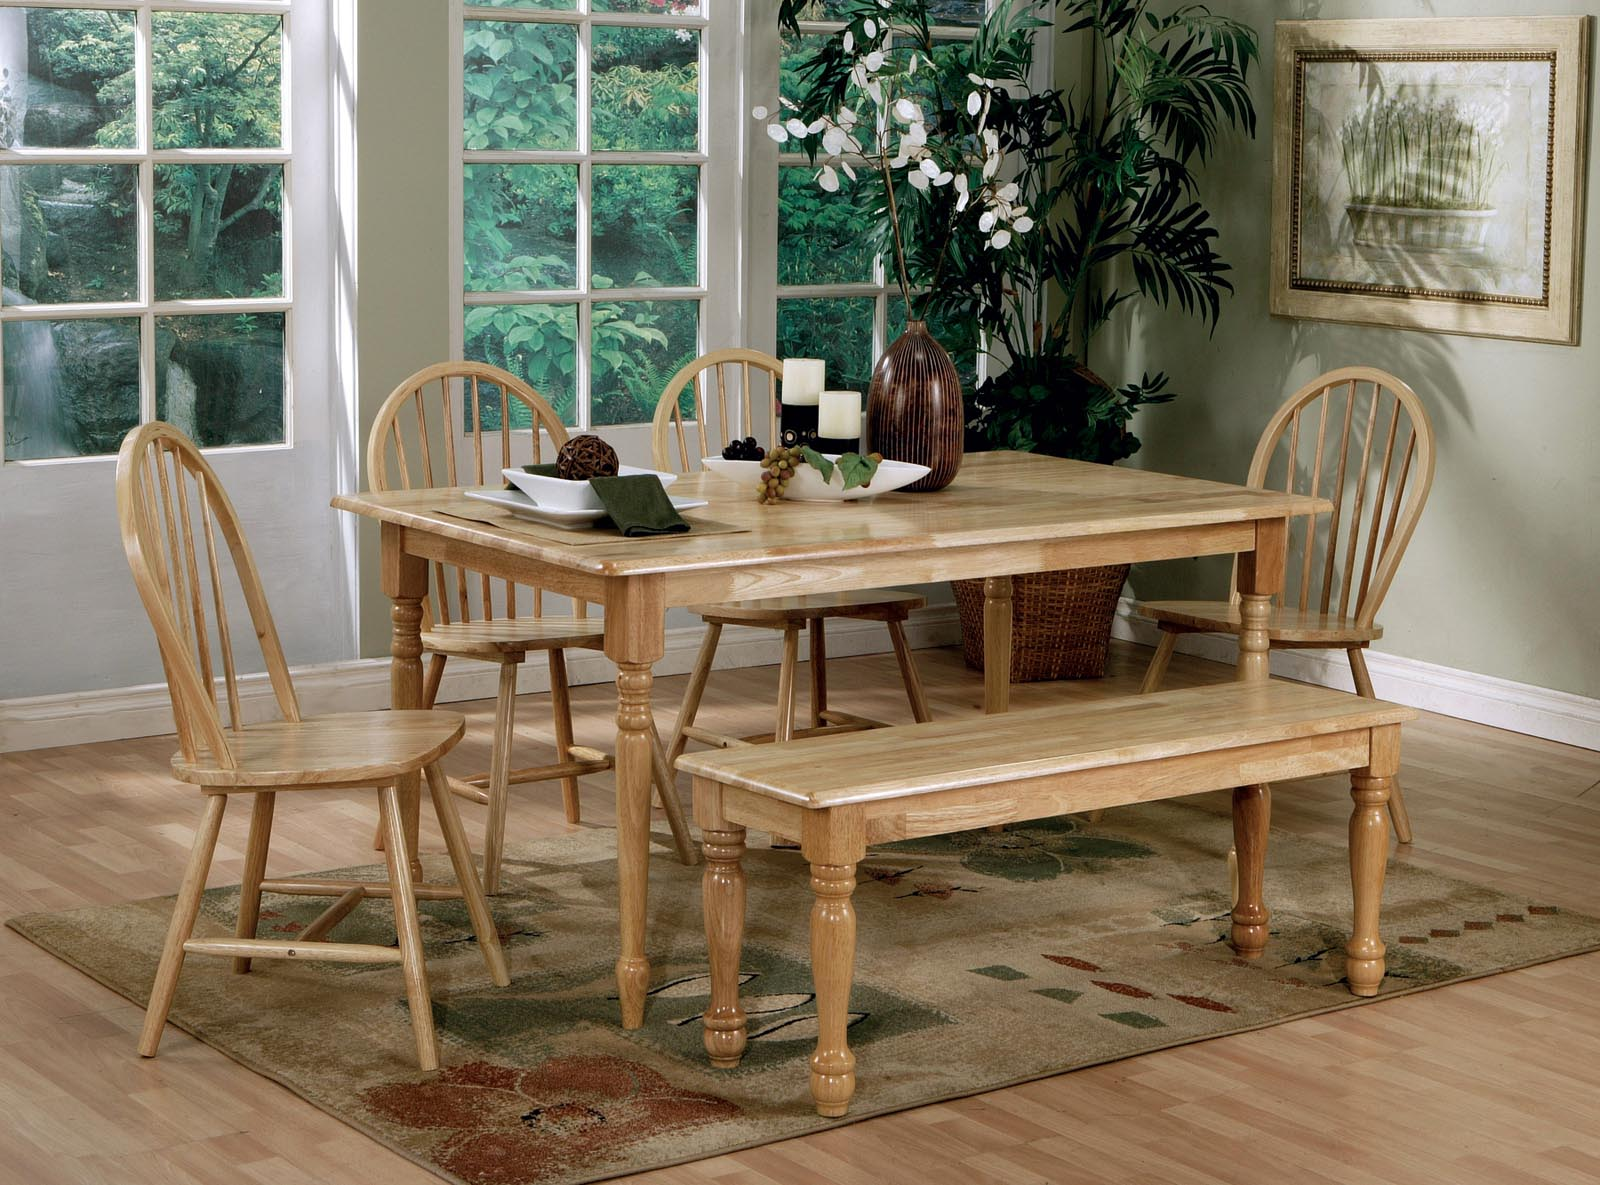 Coaster 6pc dining set in natural finish 4361s by dining rooms outlet